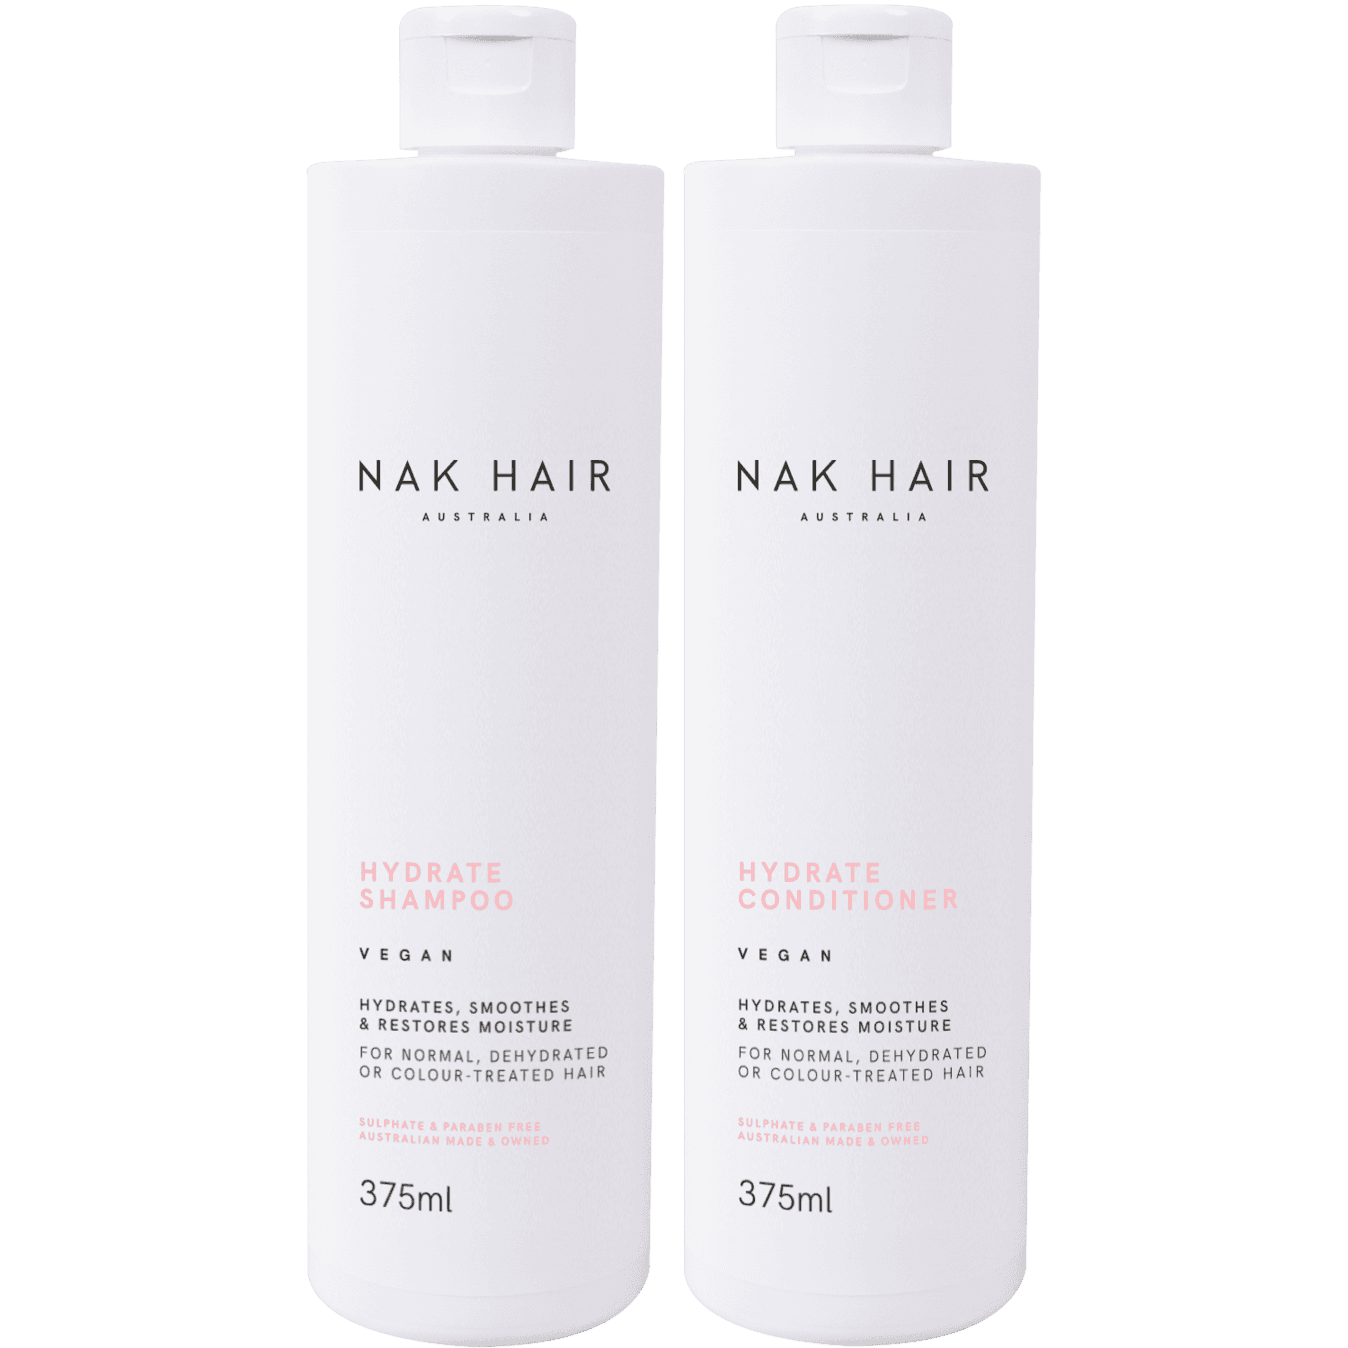 Hydrate Shampoo & Conditioner